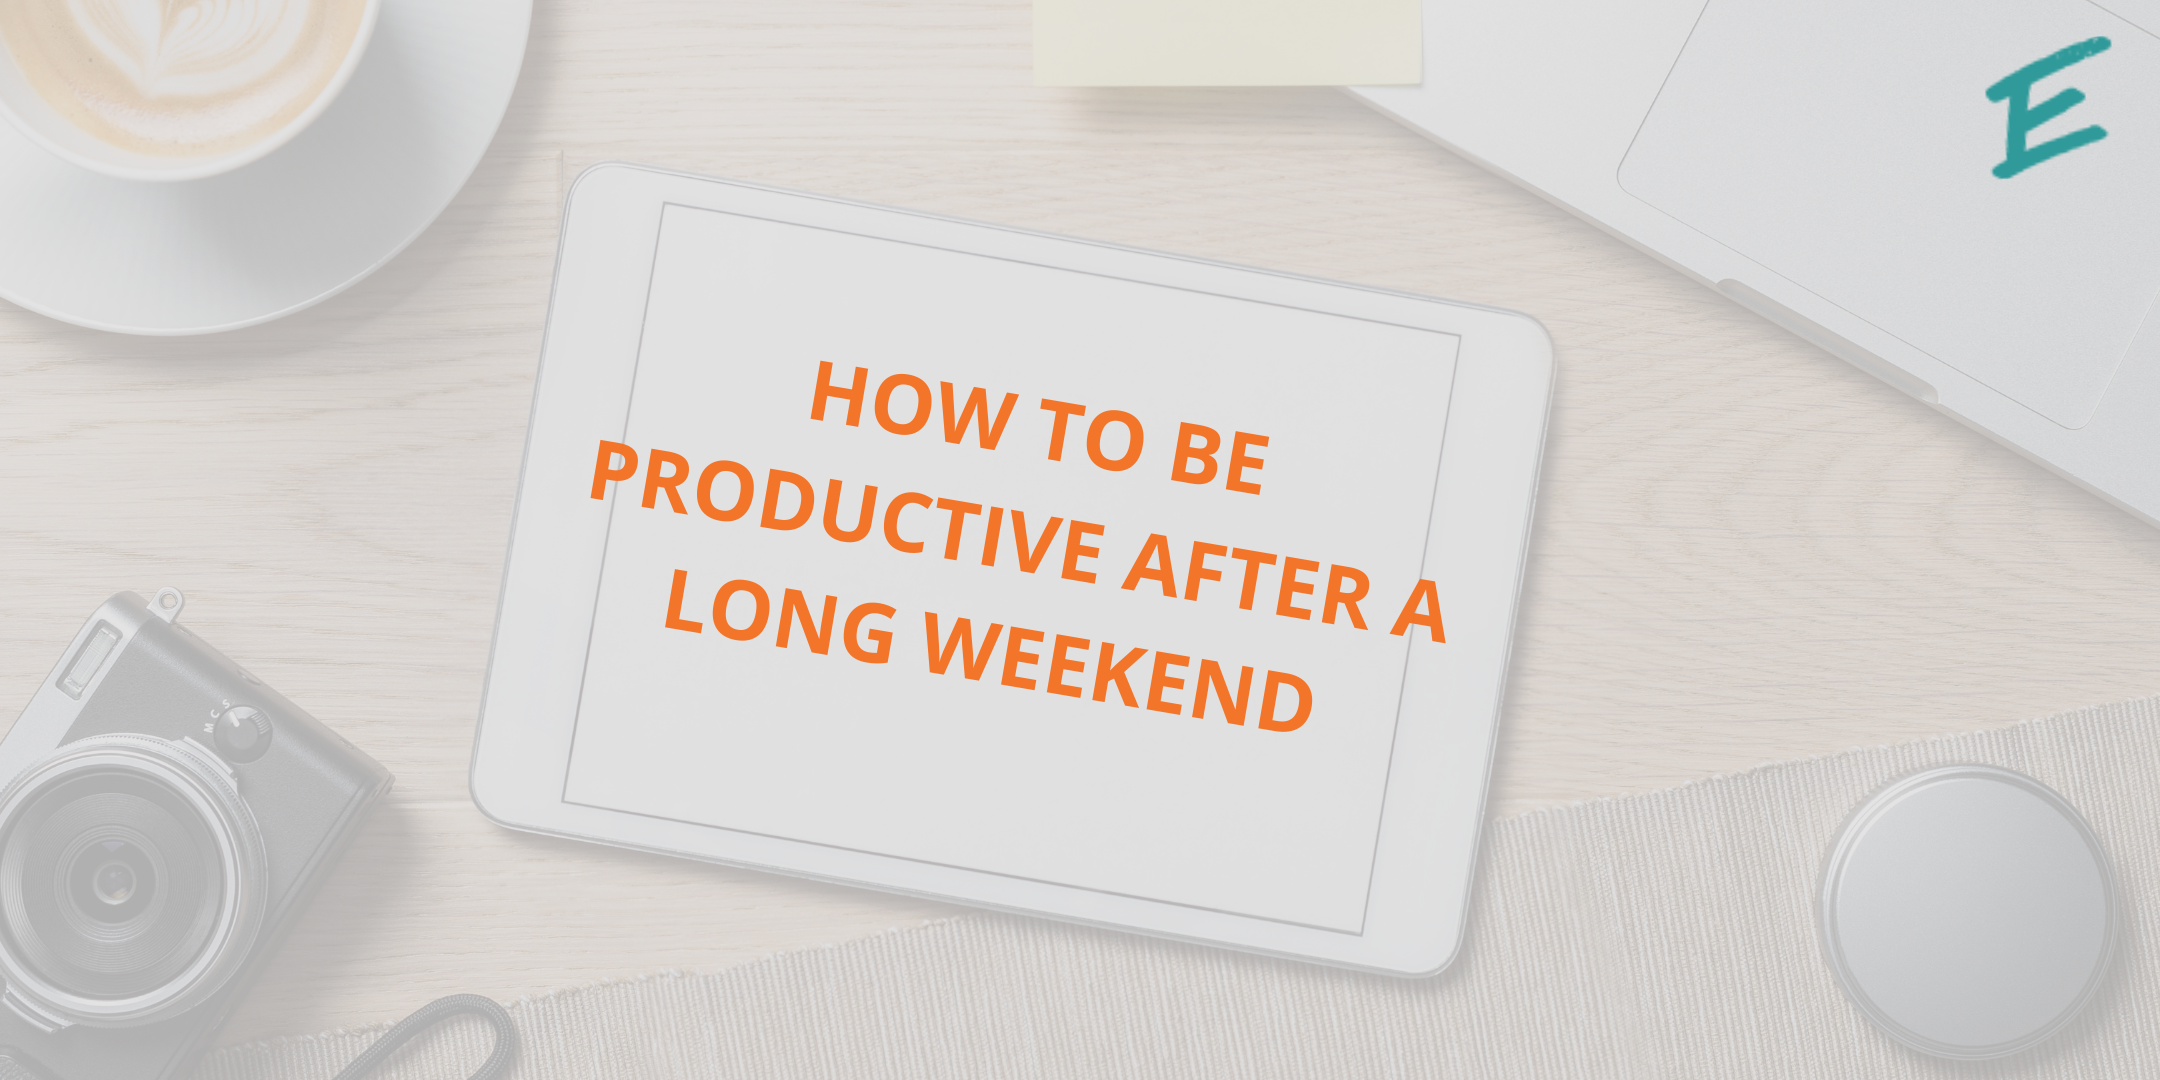 how-to-be-productive-after-long-weekend